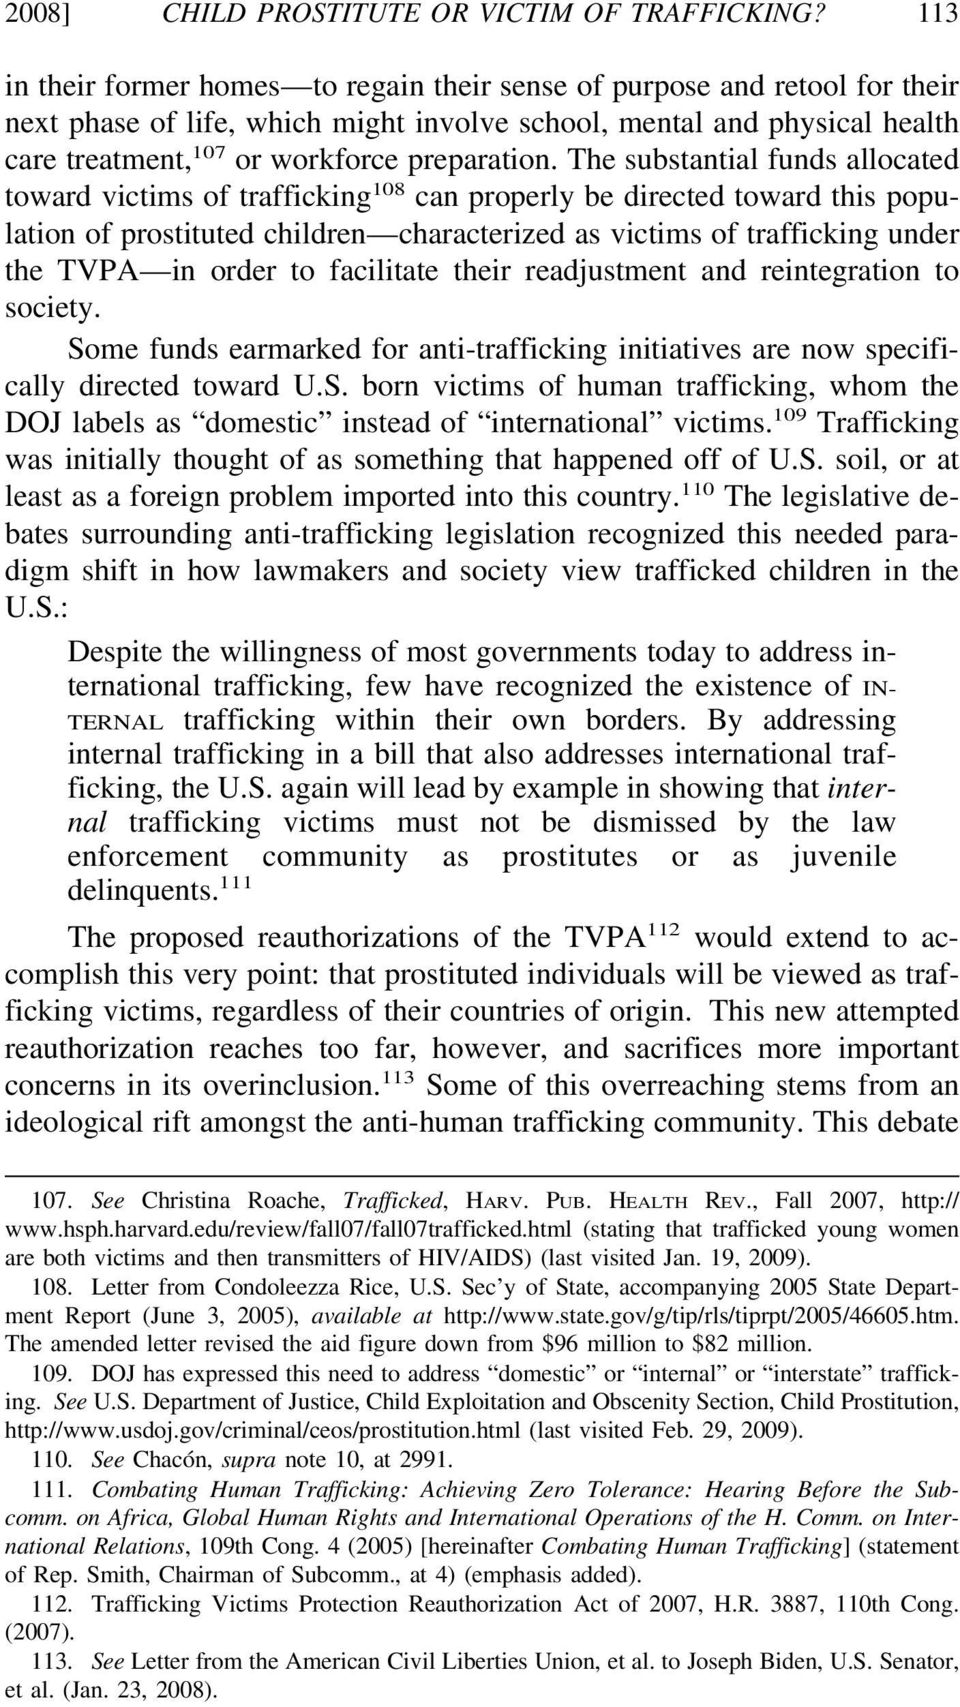 The substantial funds allocated toward victims of trafficking 108 can properly be directed toward this population of prostituted children characterized as victims of trafficking under the TVPA in